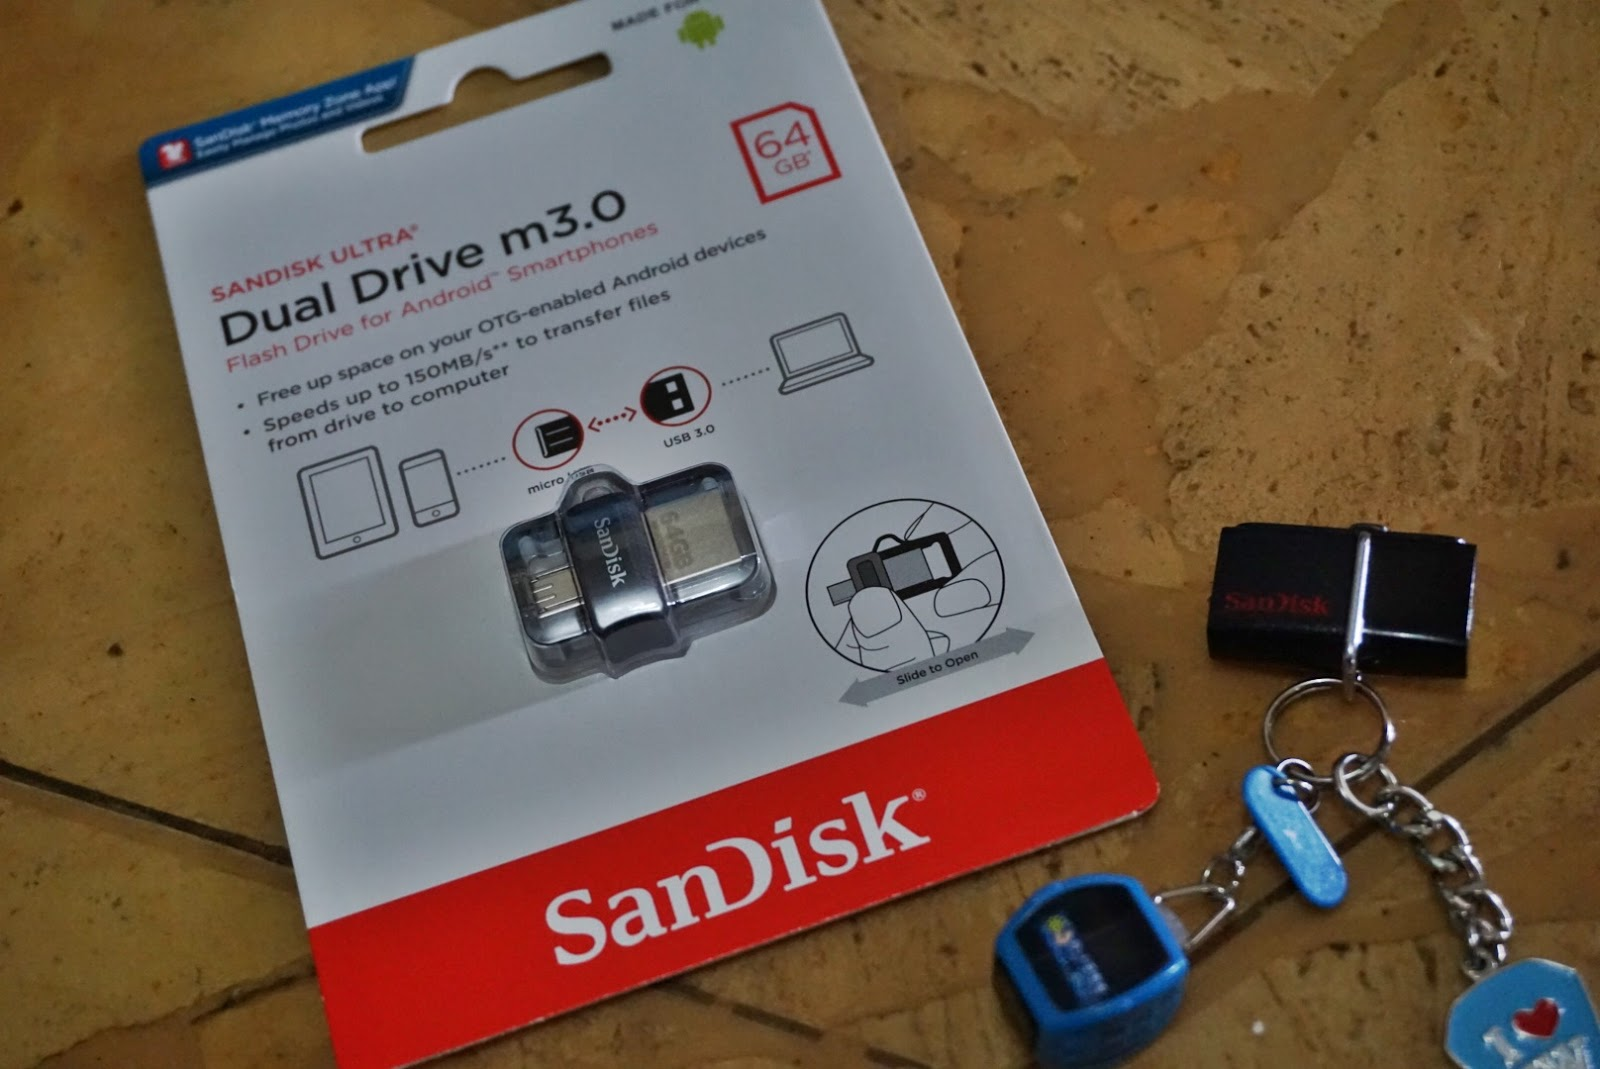 Sandisk Ultra Dual Otg Drive M30 From Lazada 32gb Gold Edition Dalam Entry Box Of Joy Sally Dah Beli On The Go Kat Sebelum Dapat Yang Lagi Besar Kapasitinya Nihahahahasally